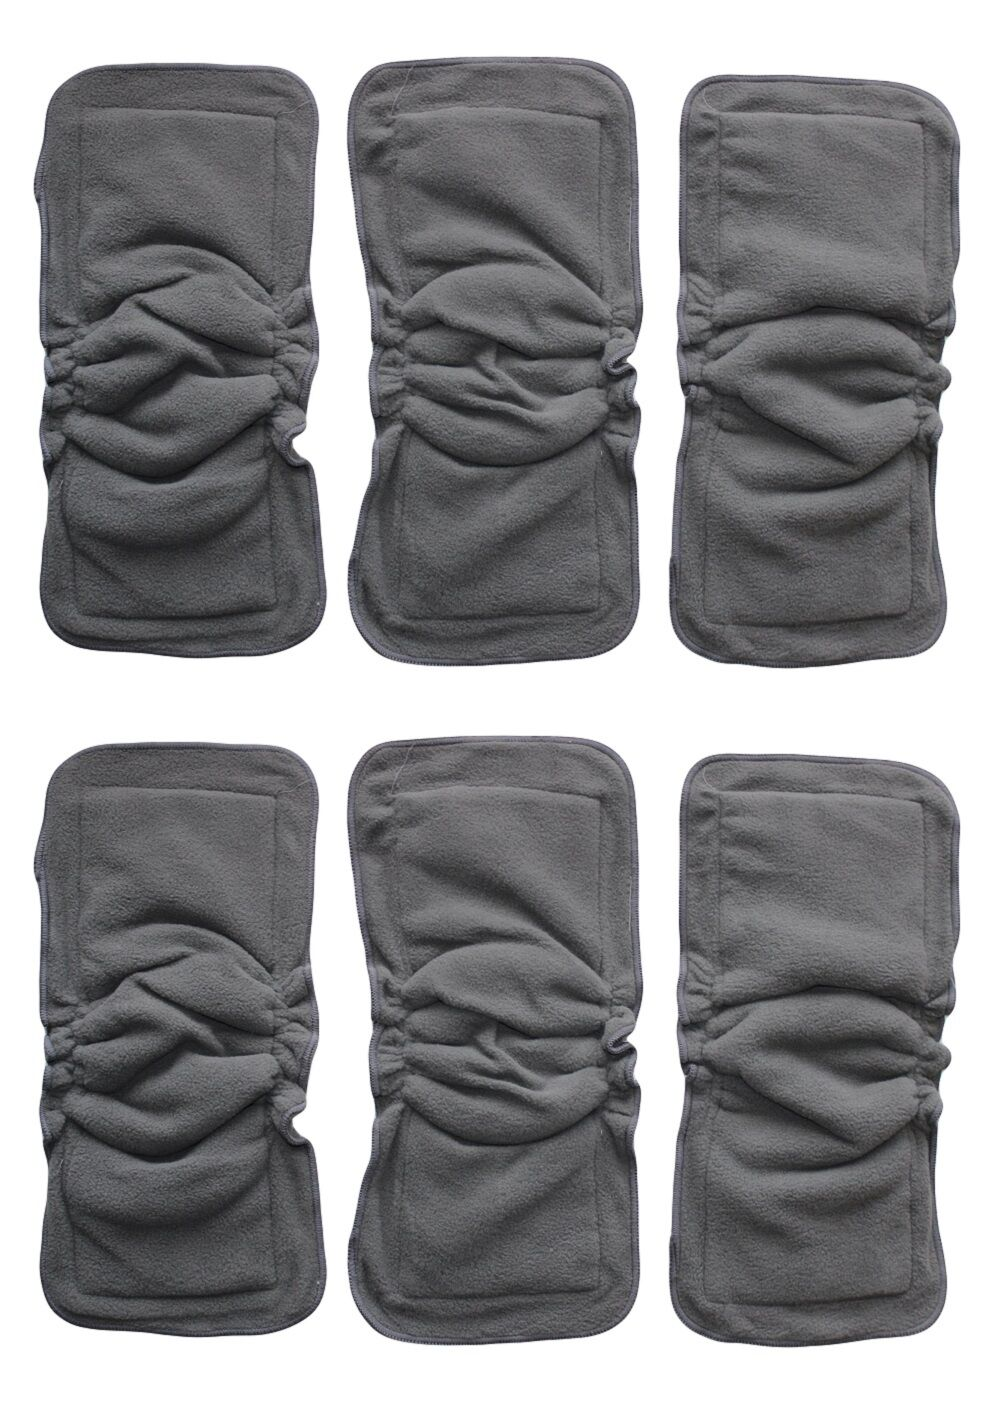 BAMBOO CHRACOAL INSERTS DOUBLERS WITH GUSSETS FOR BABY CLOTH